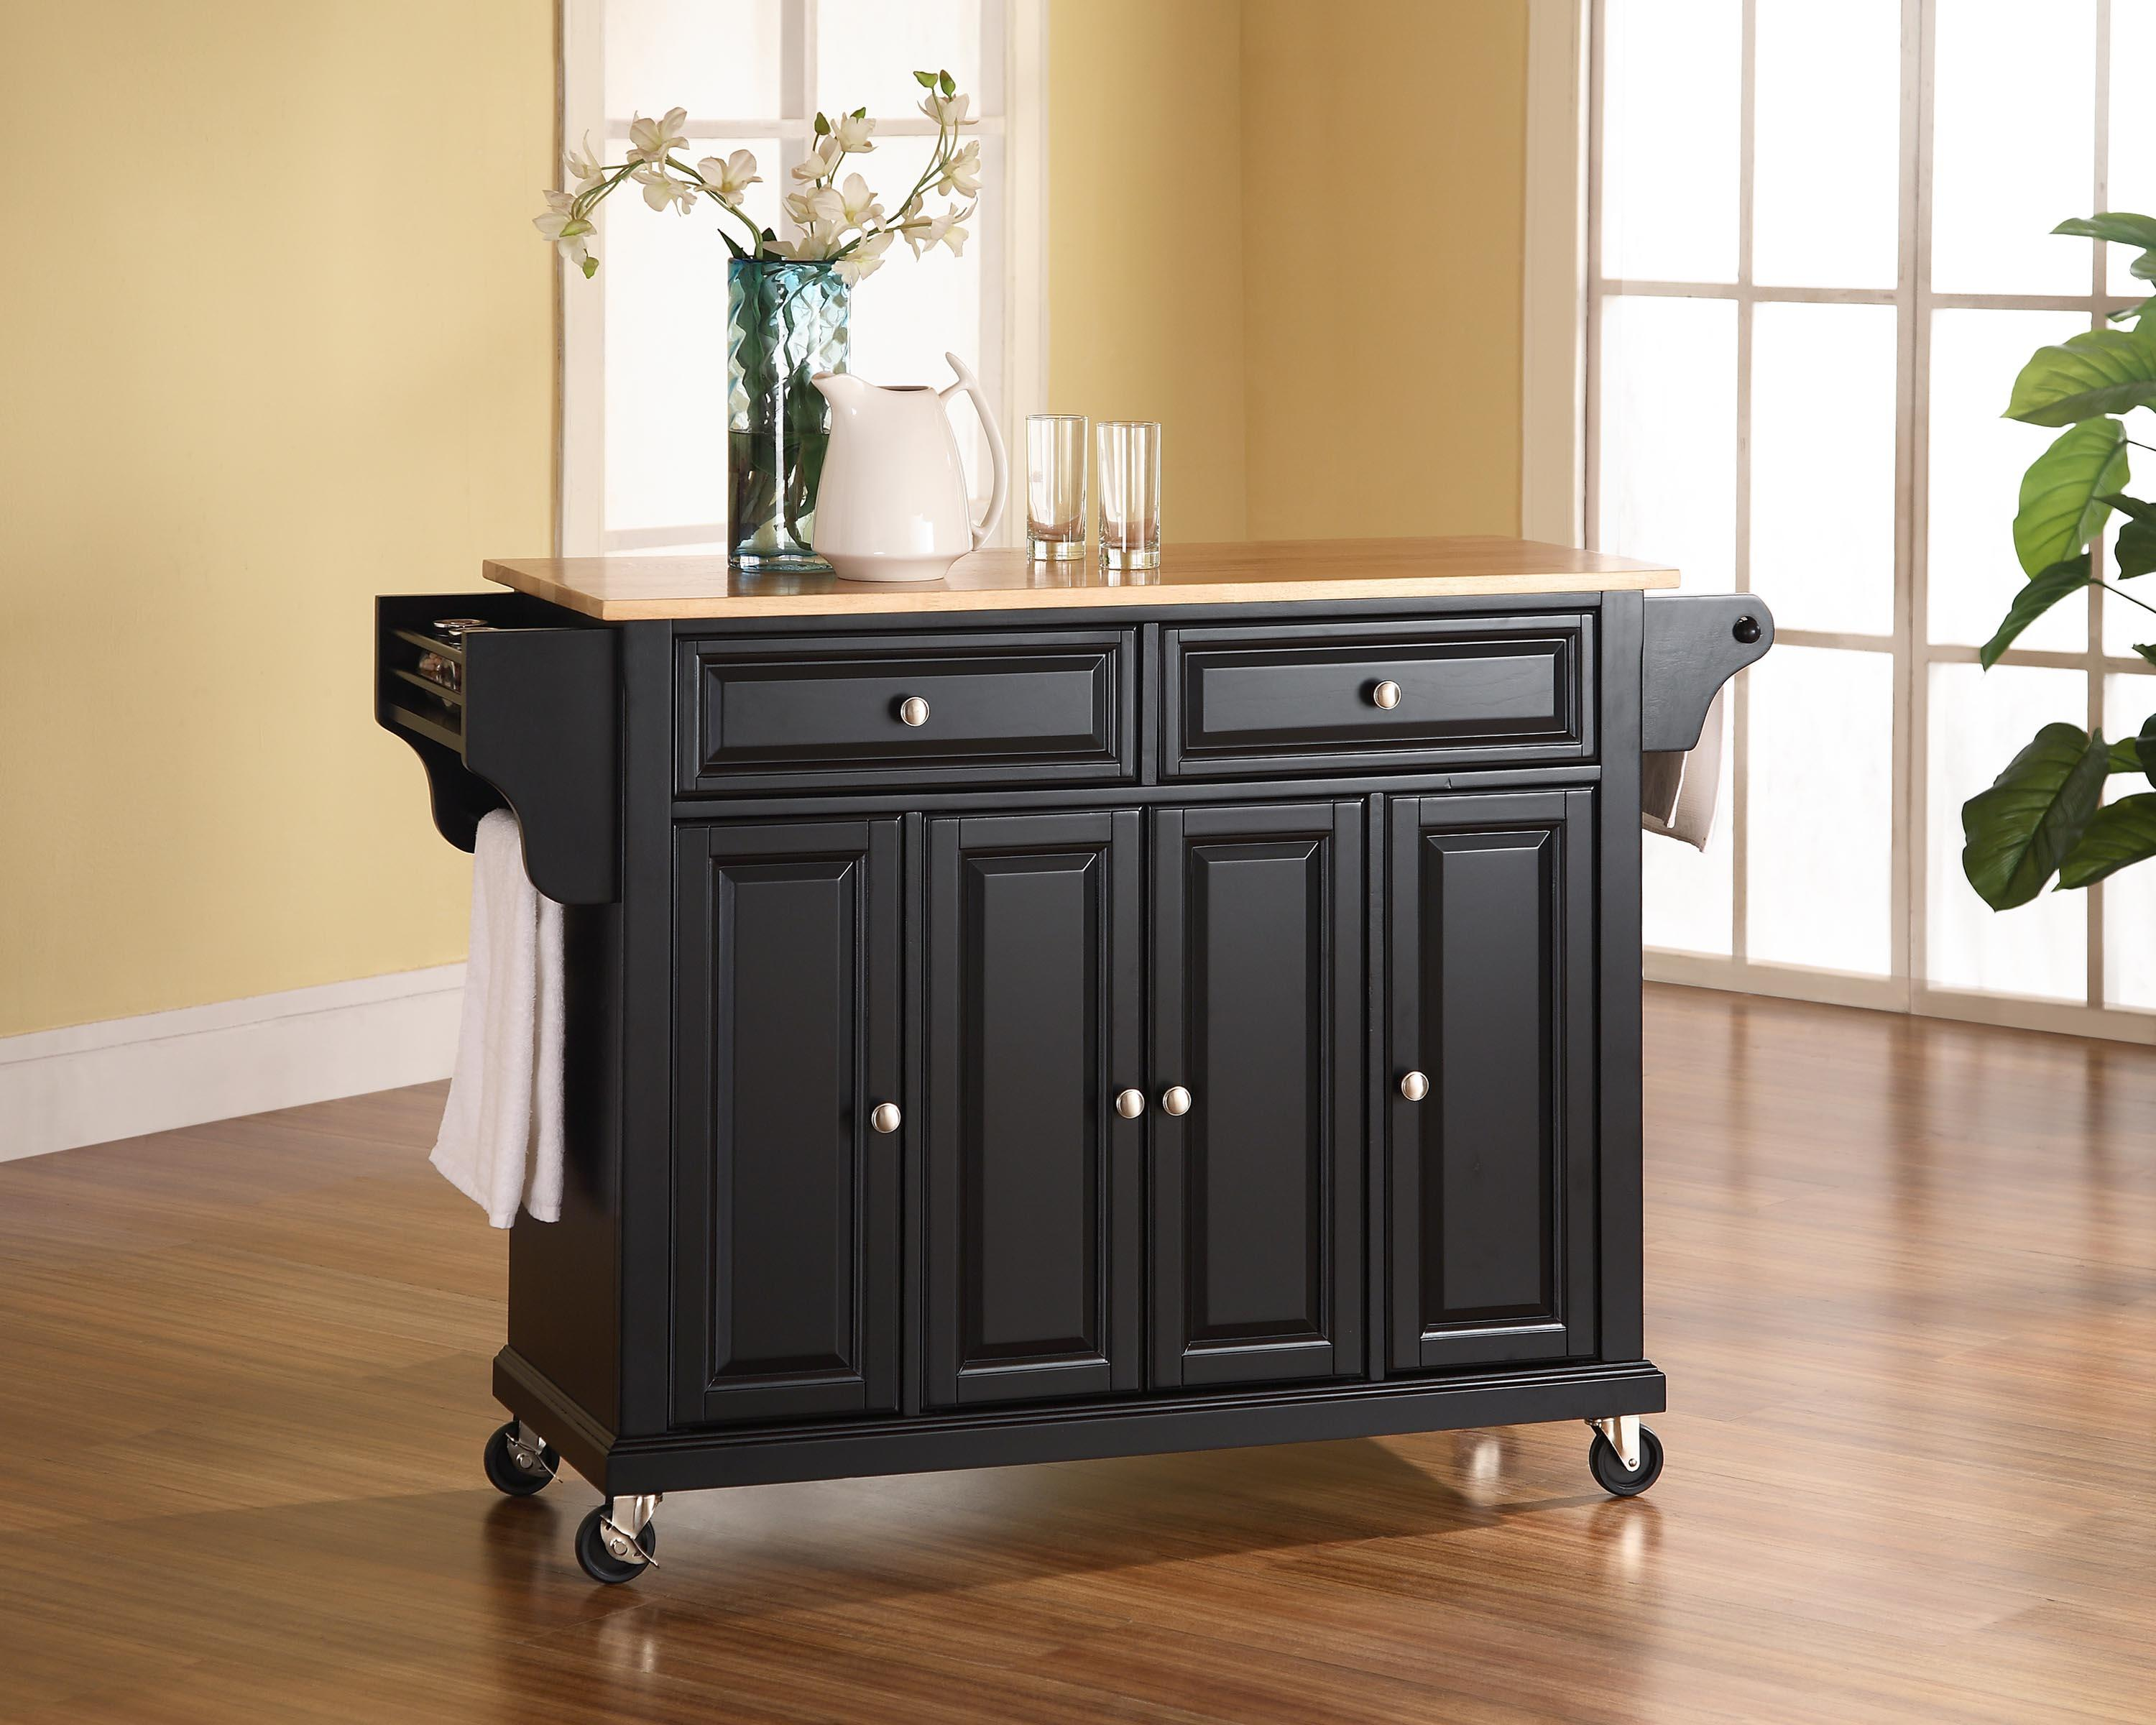 What Is A Kitchen Island With Pictures: Kitchen Cart/Island